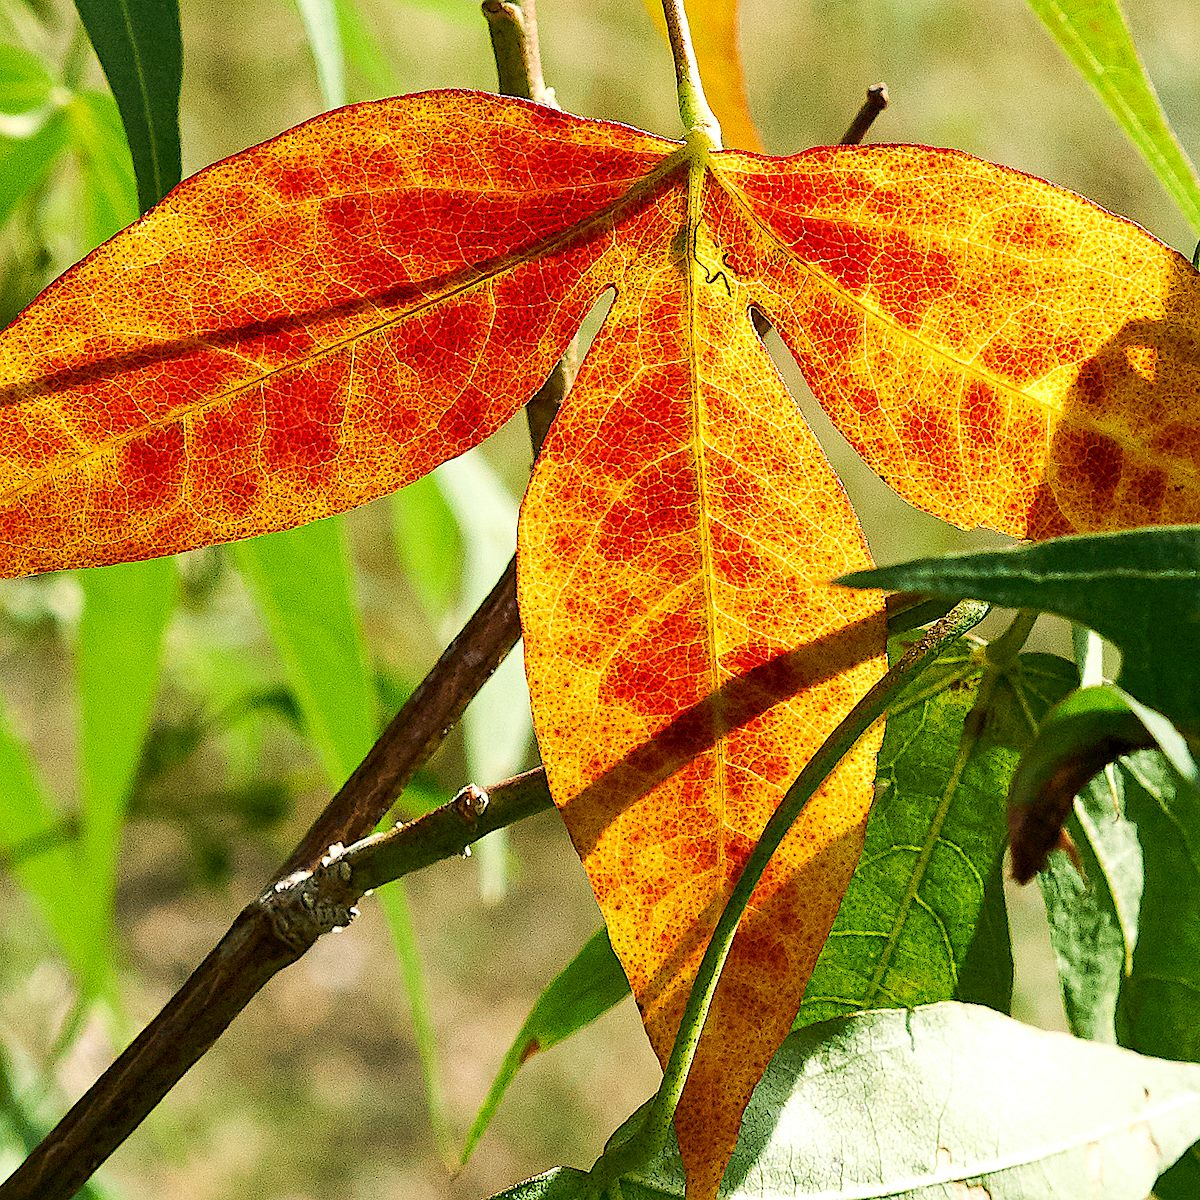 Orange and red Desert Cotton Leaf. August 2017.